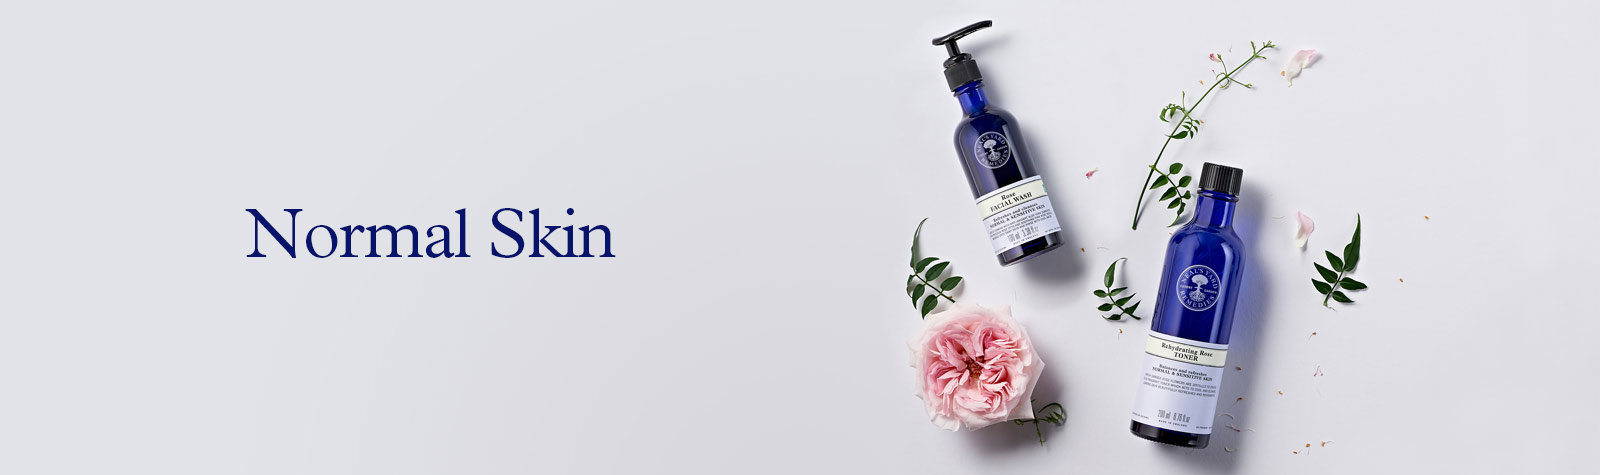 NYR-category-page-normal-skin-ws (1) cop